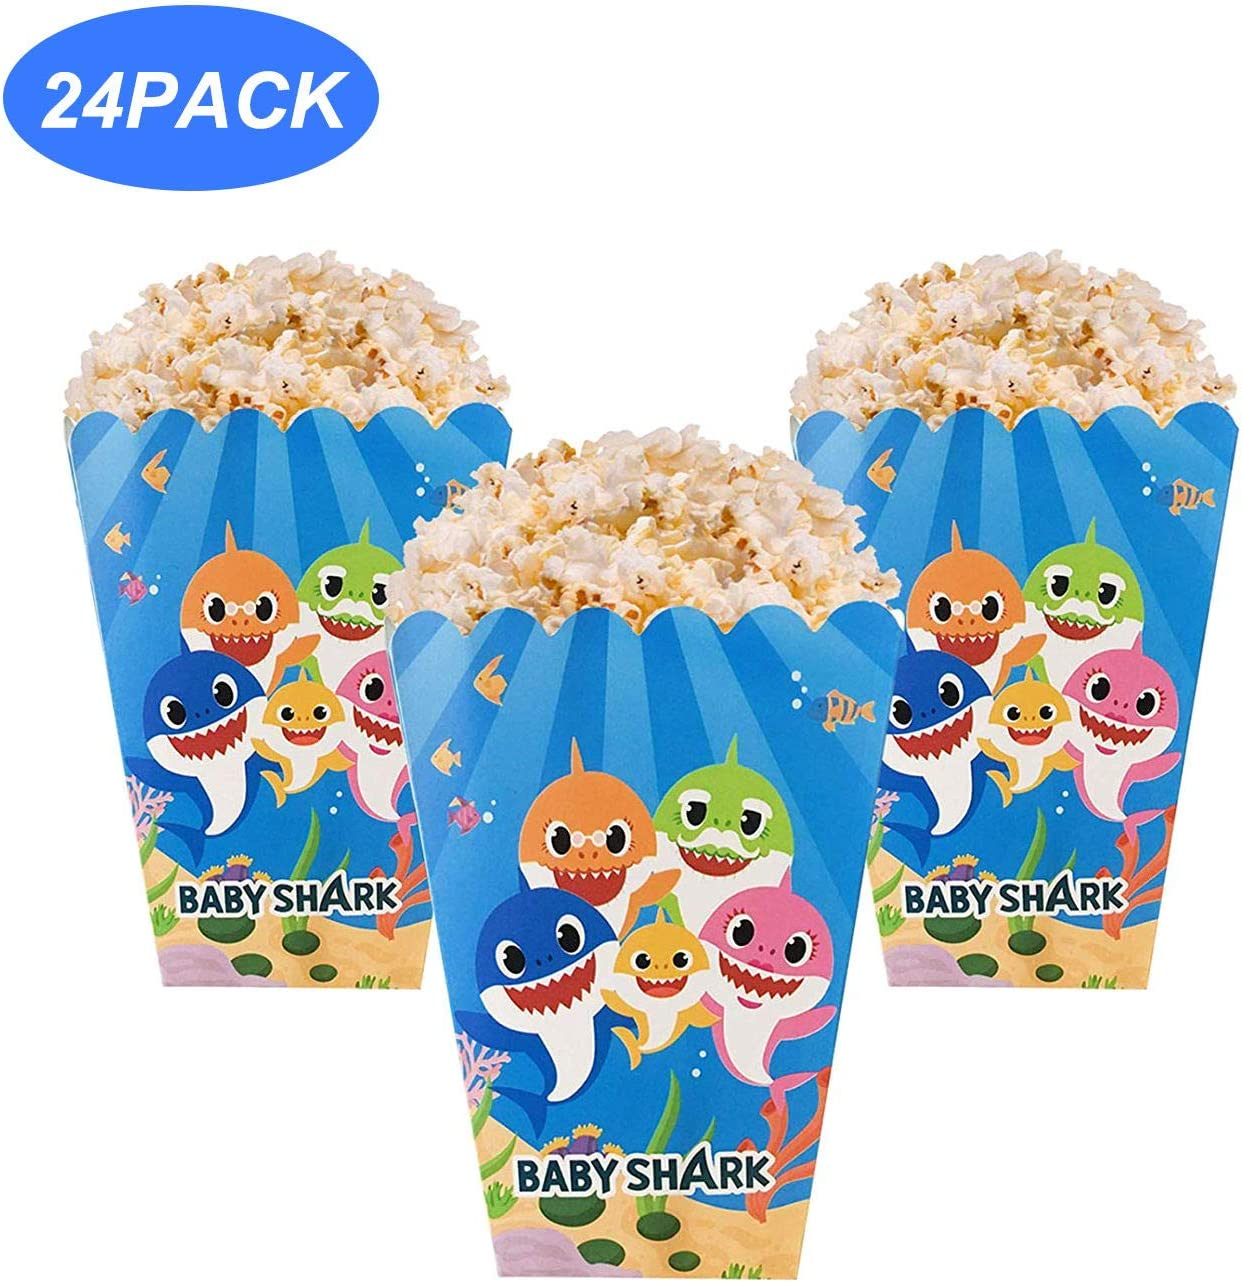 24 PCS Baby Cute Shark Popcorn Snack Boxes Party Supplies Mini Popcorn Party Favor Containers for Kids Baby Shower Birthday Parties